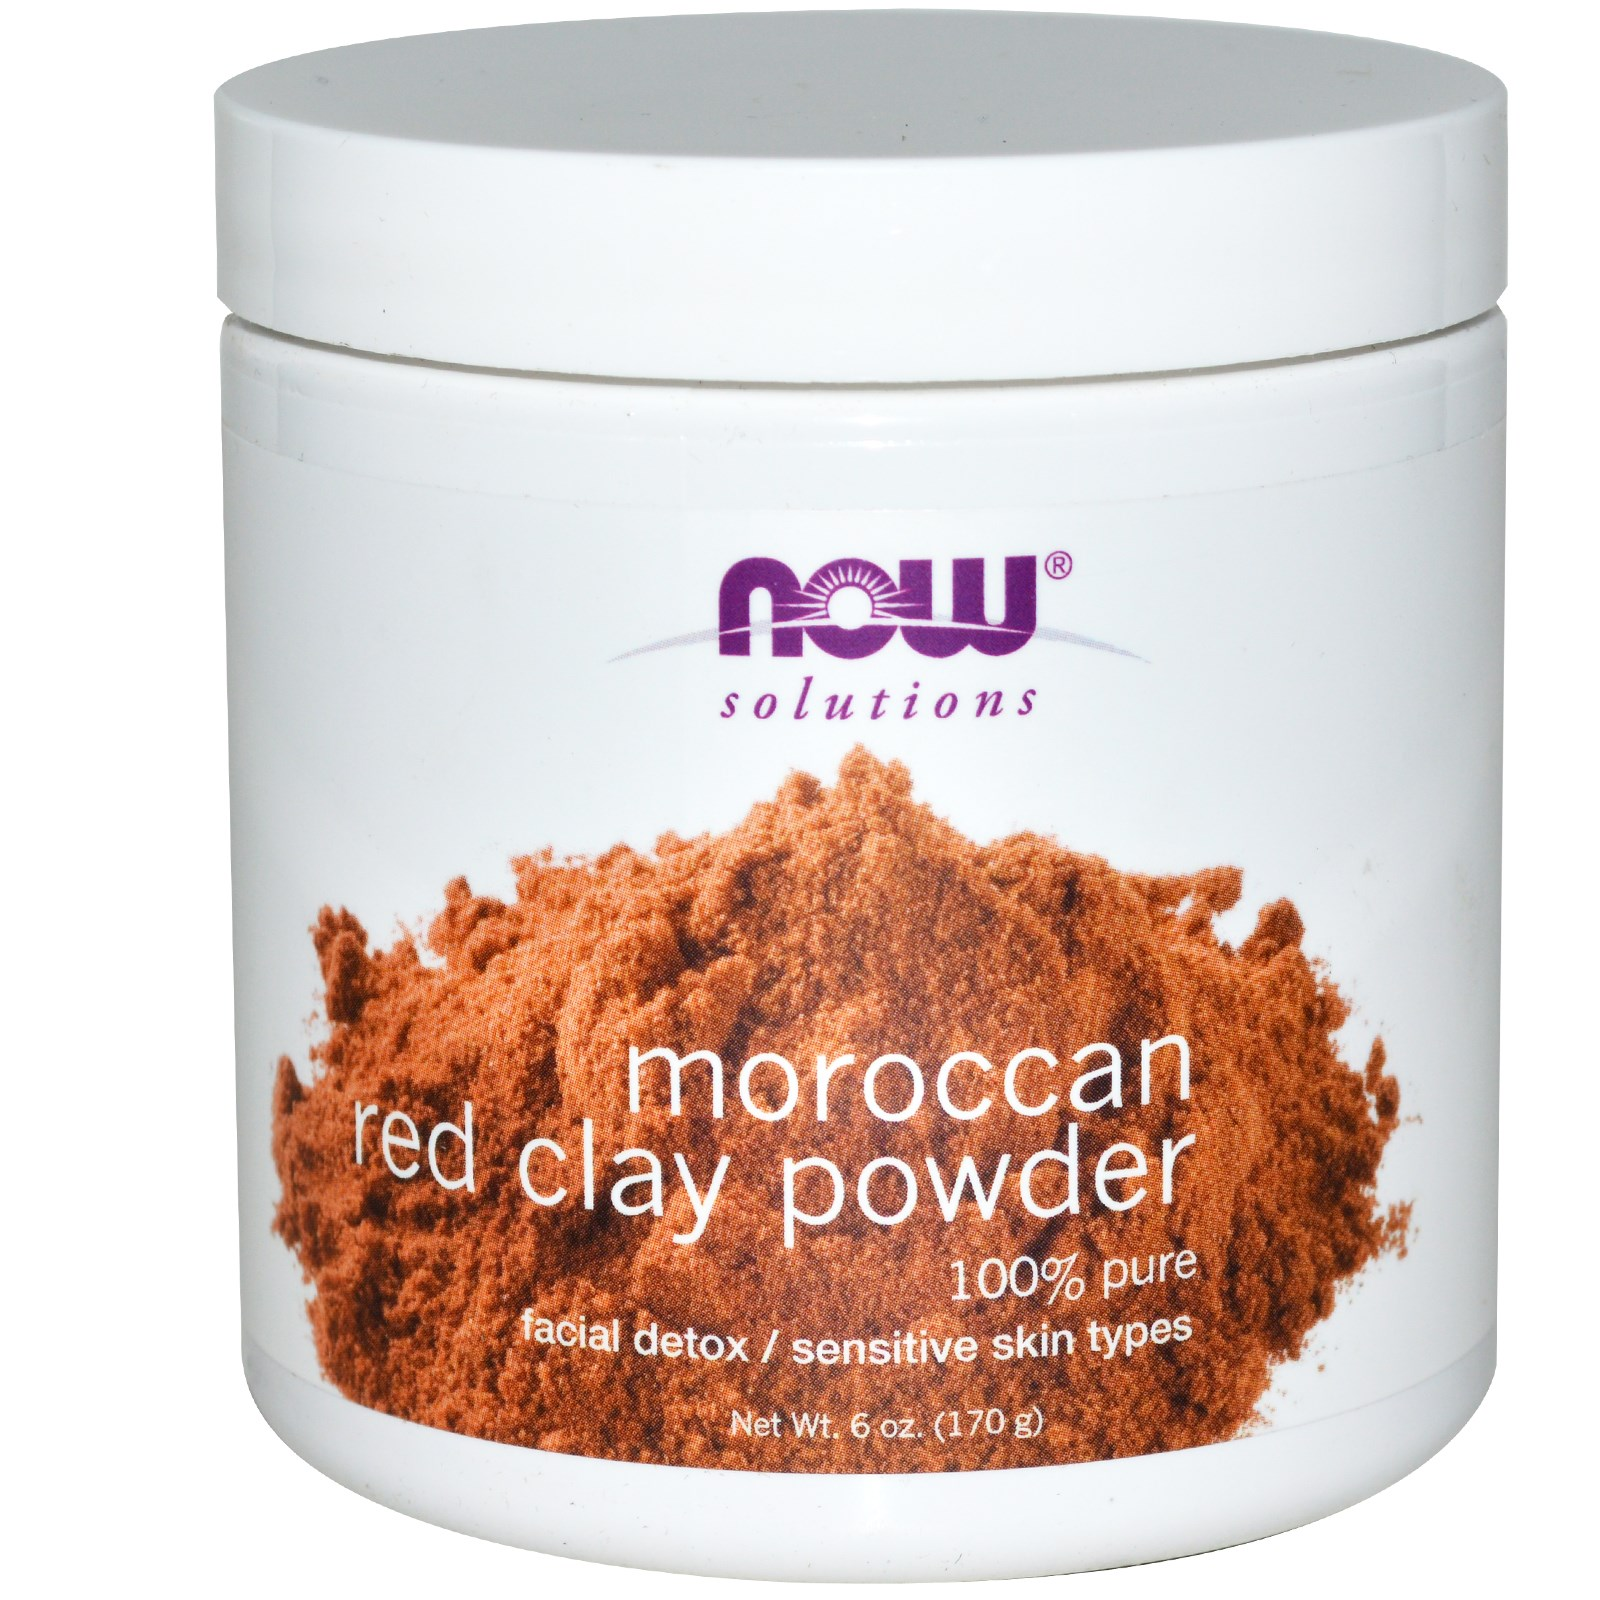 Image of Moroccan Red Clay Facial Detox Powder (170 gram) - Now Foods 0733739081902